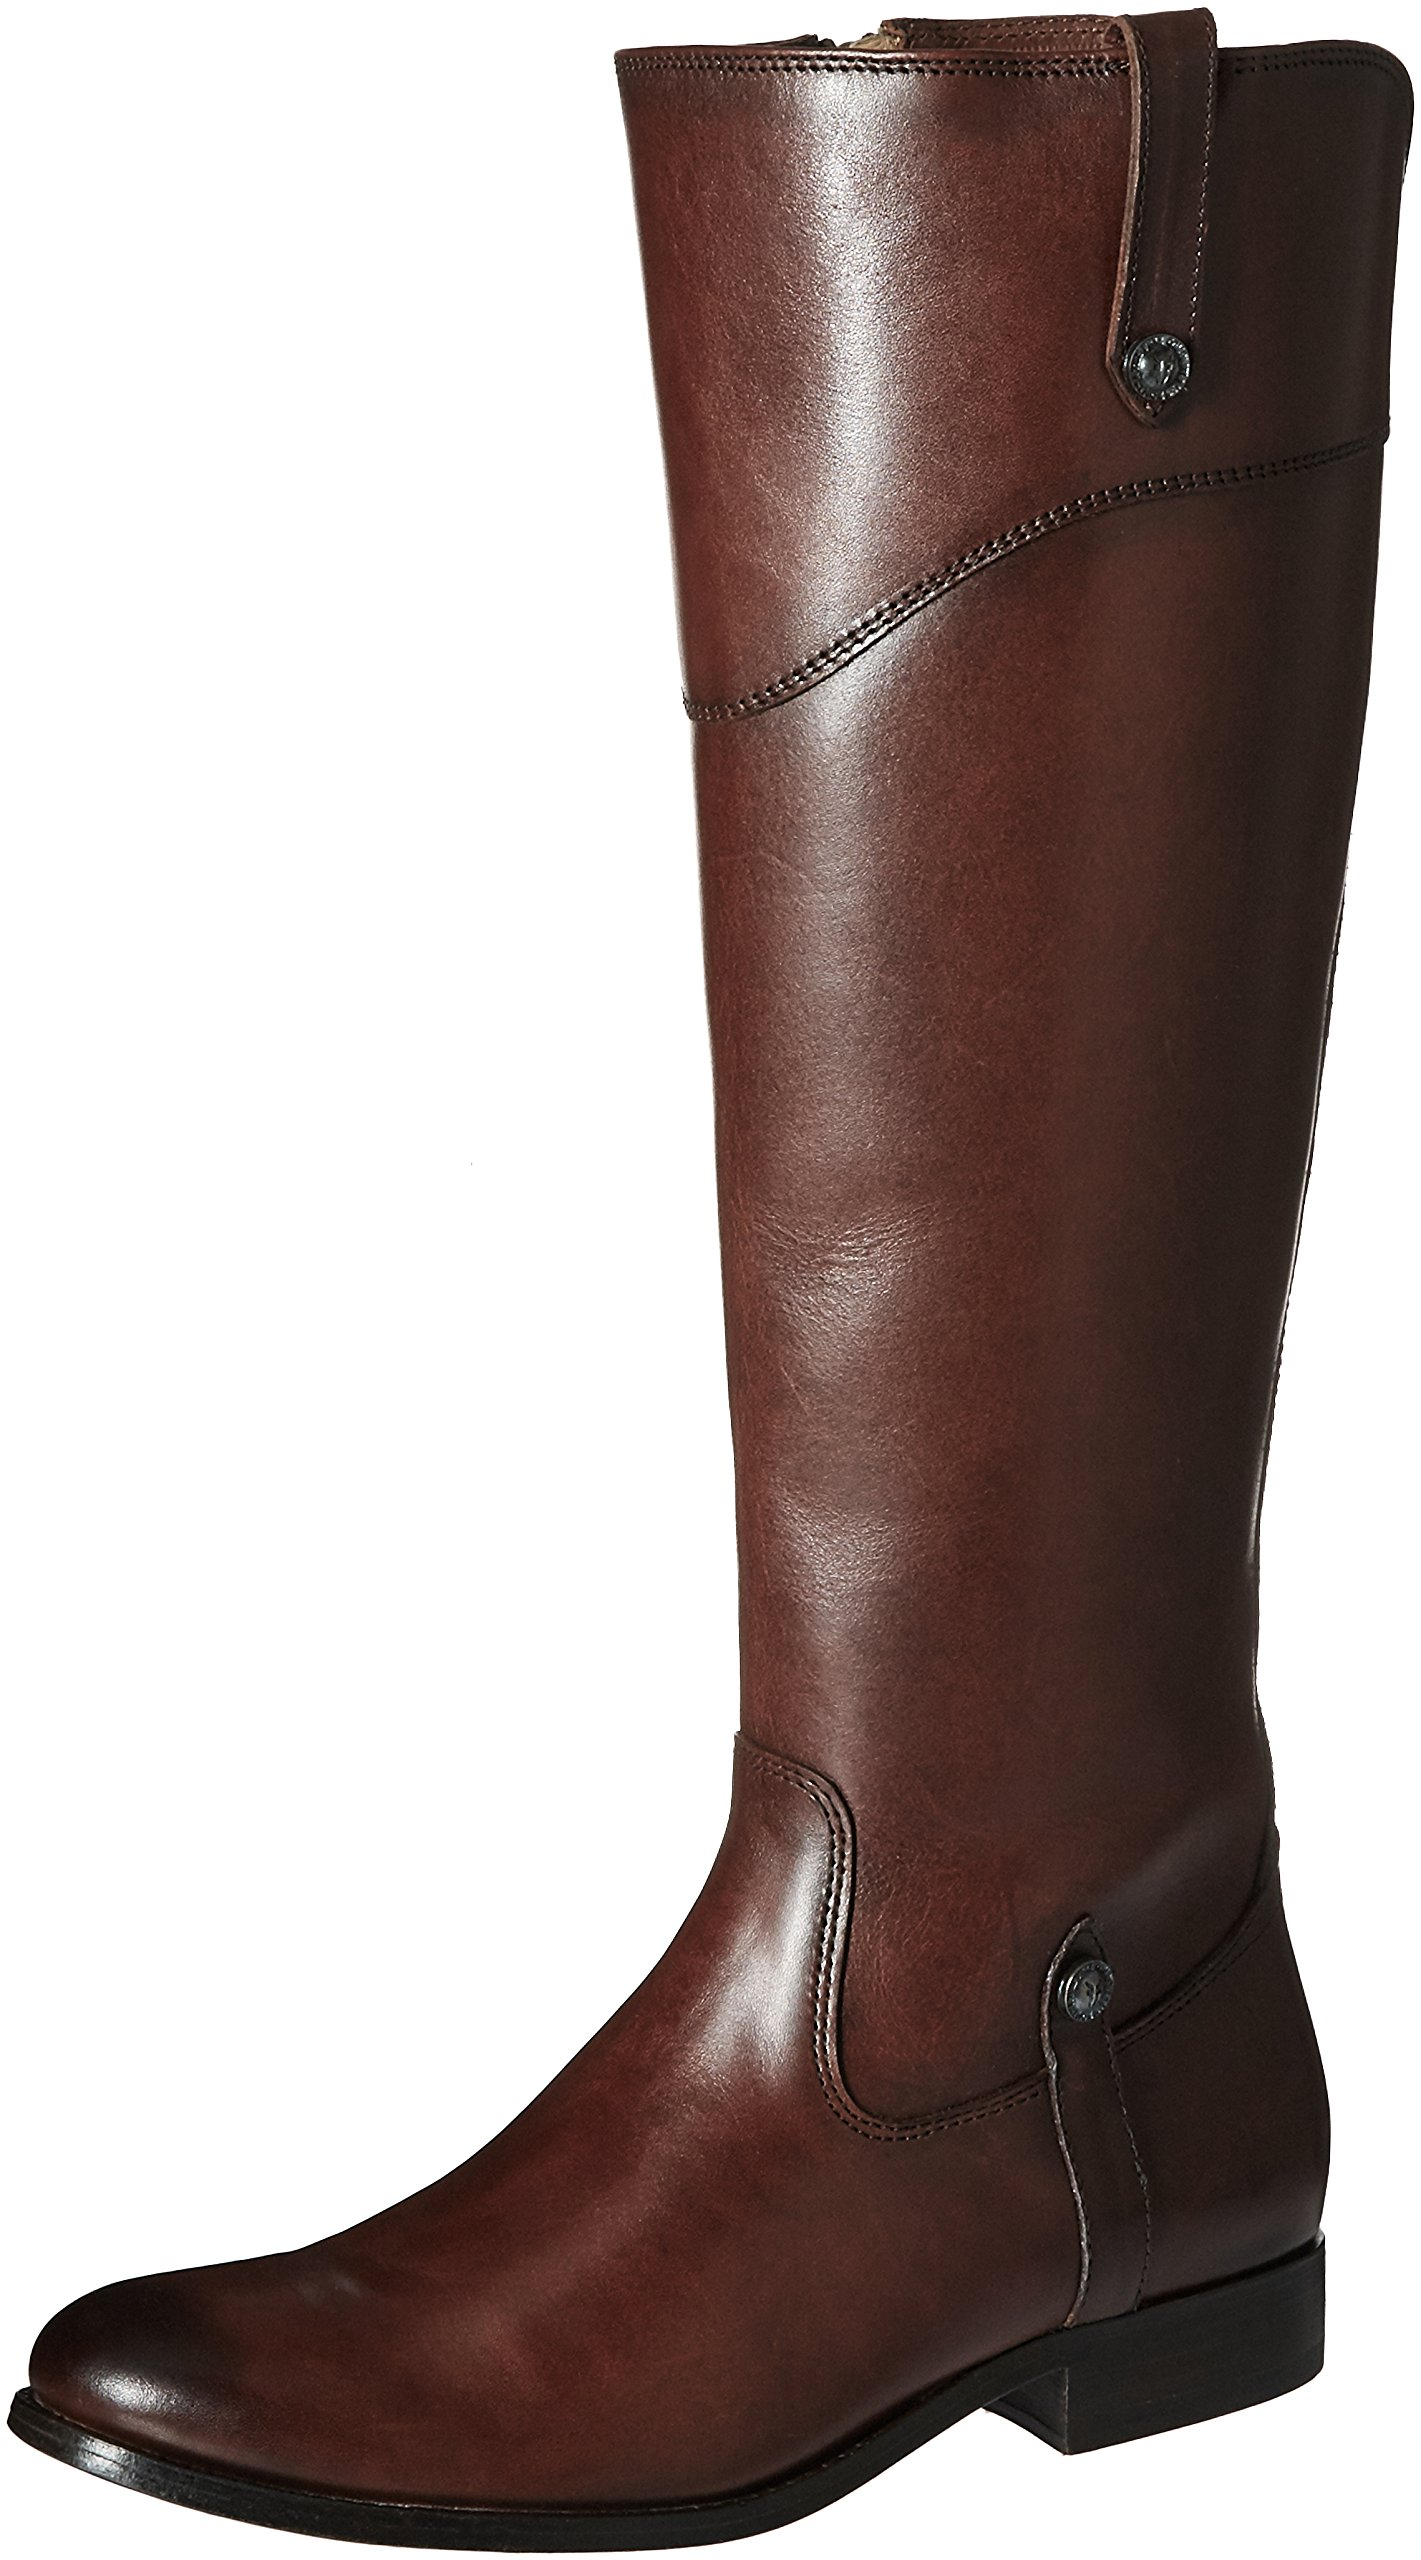 FRYE Women's Melissa Tab Tall Riding Boot, Redwood, 8.5 M US